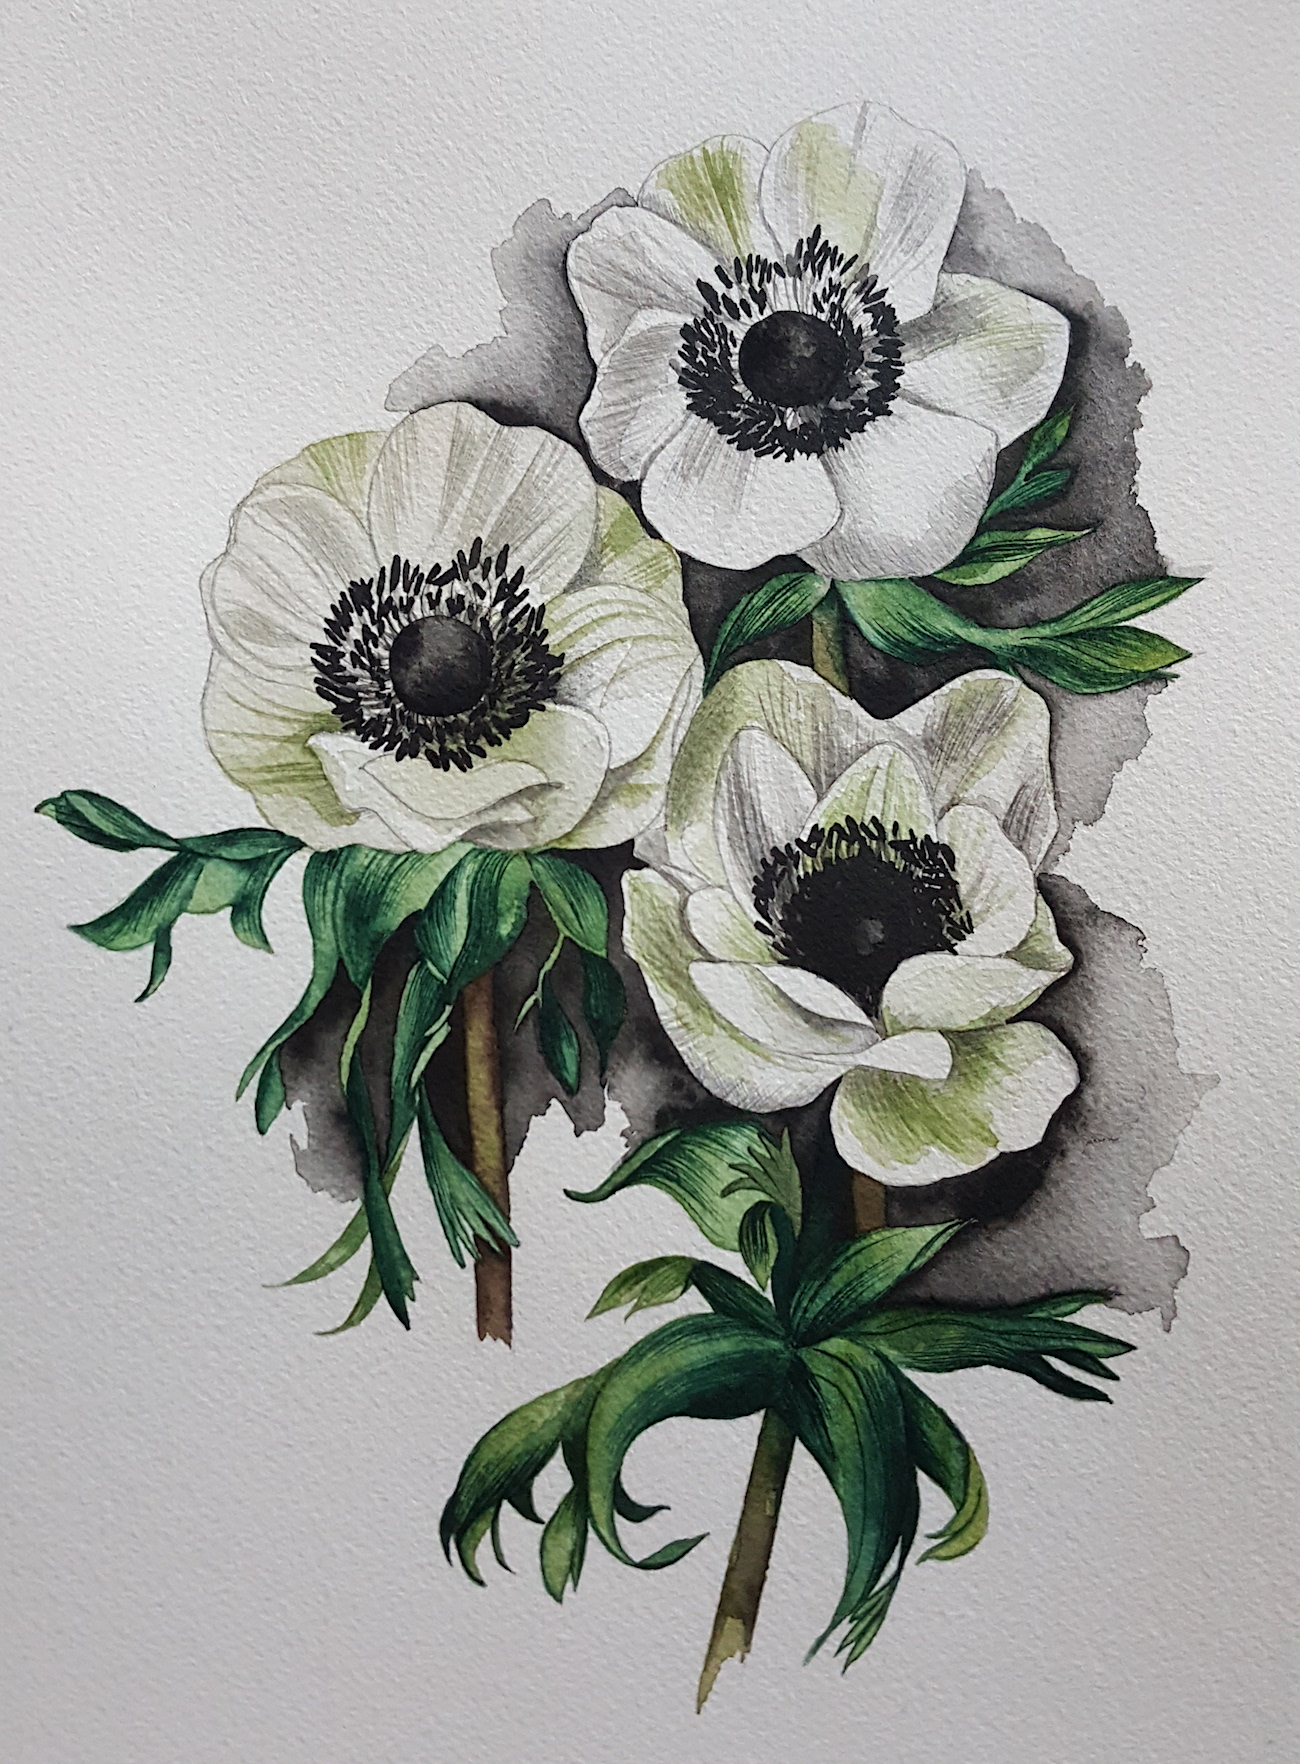 Finished watercolour image of anemones with a black wash around